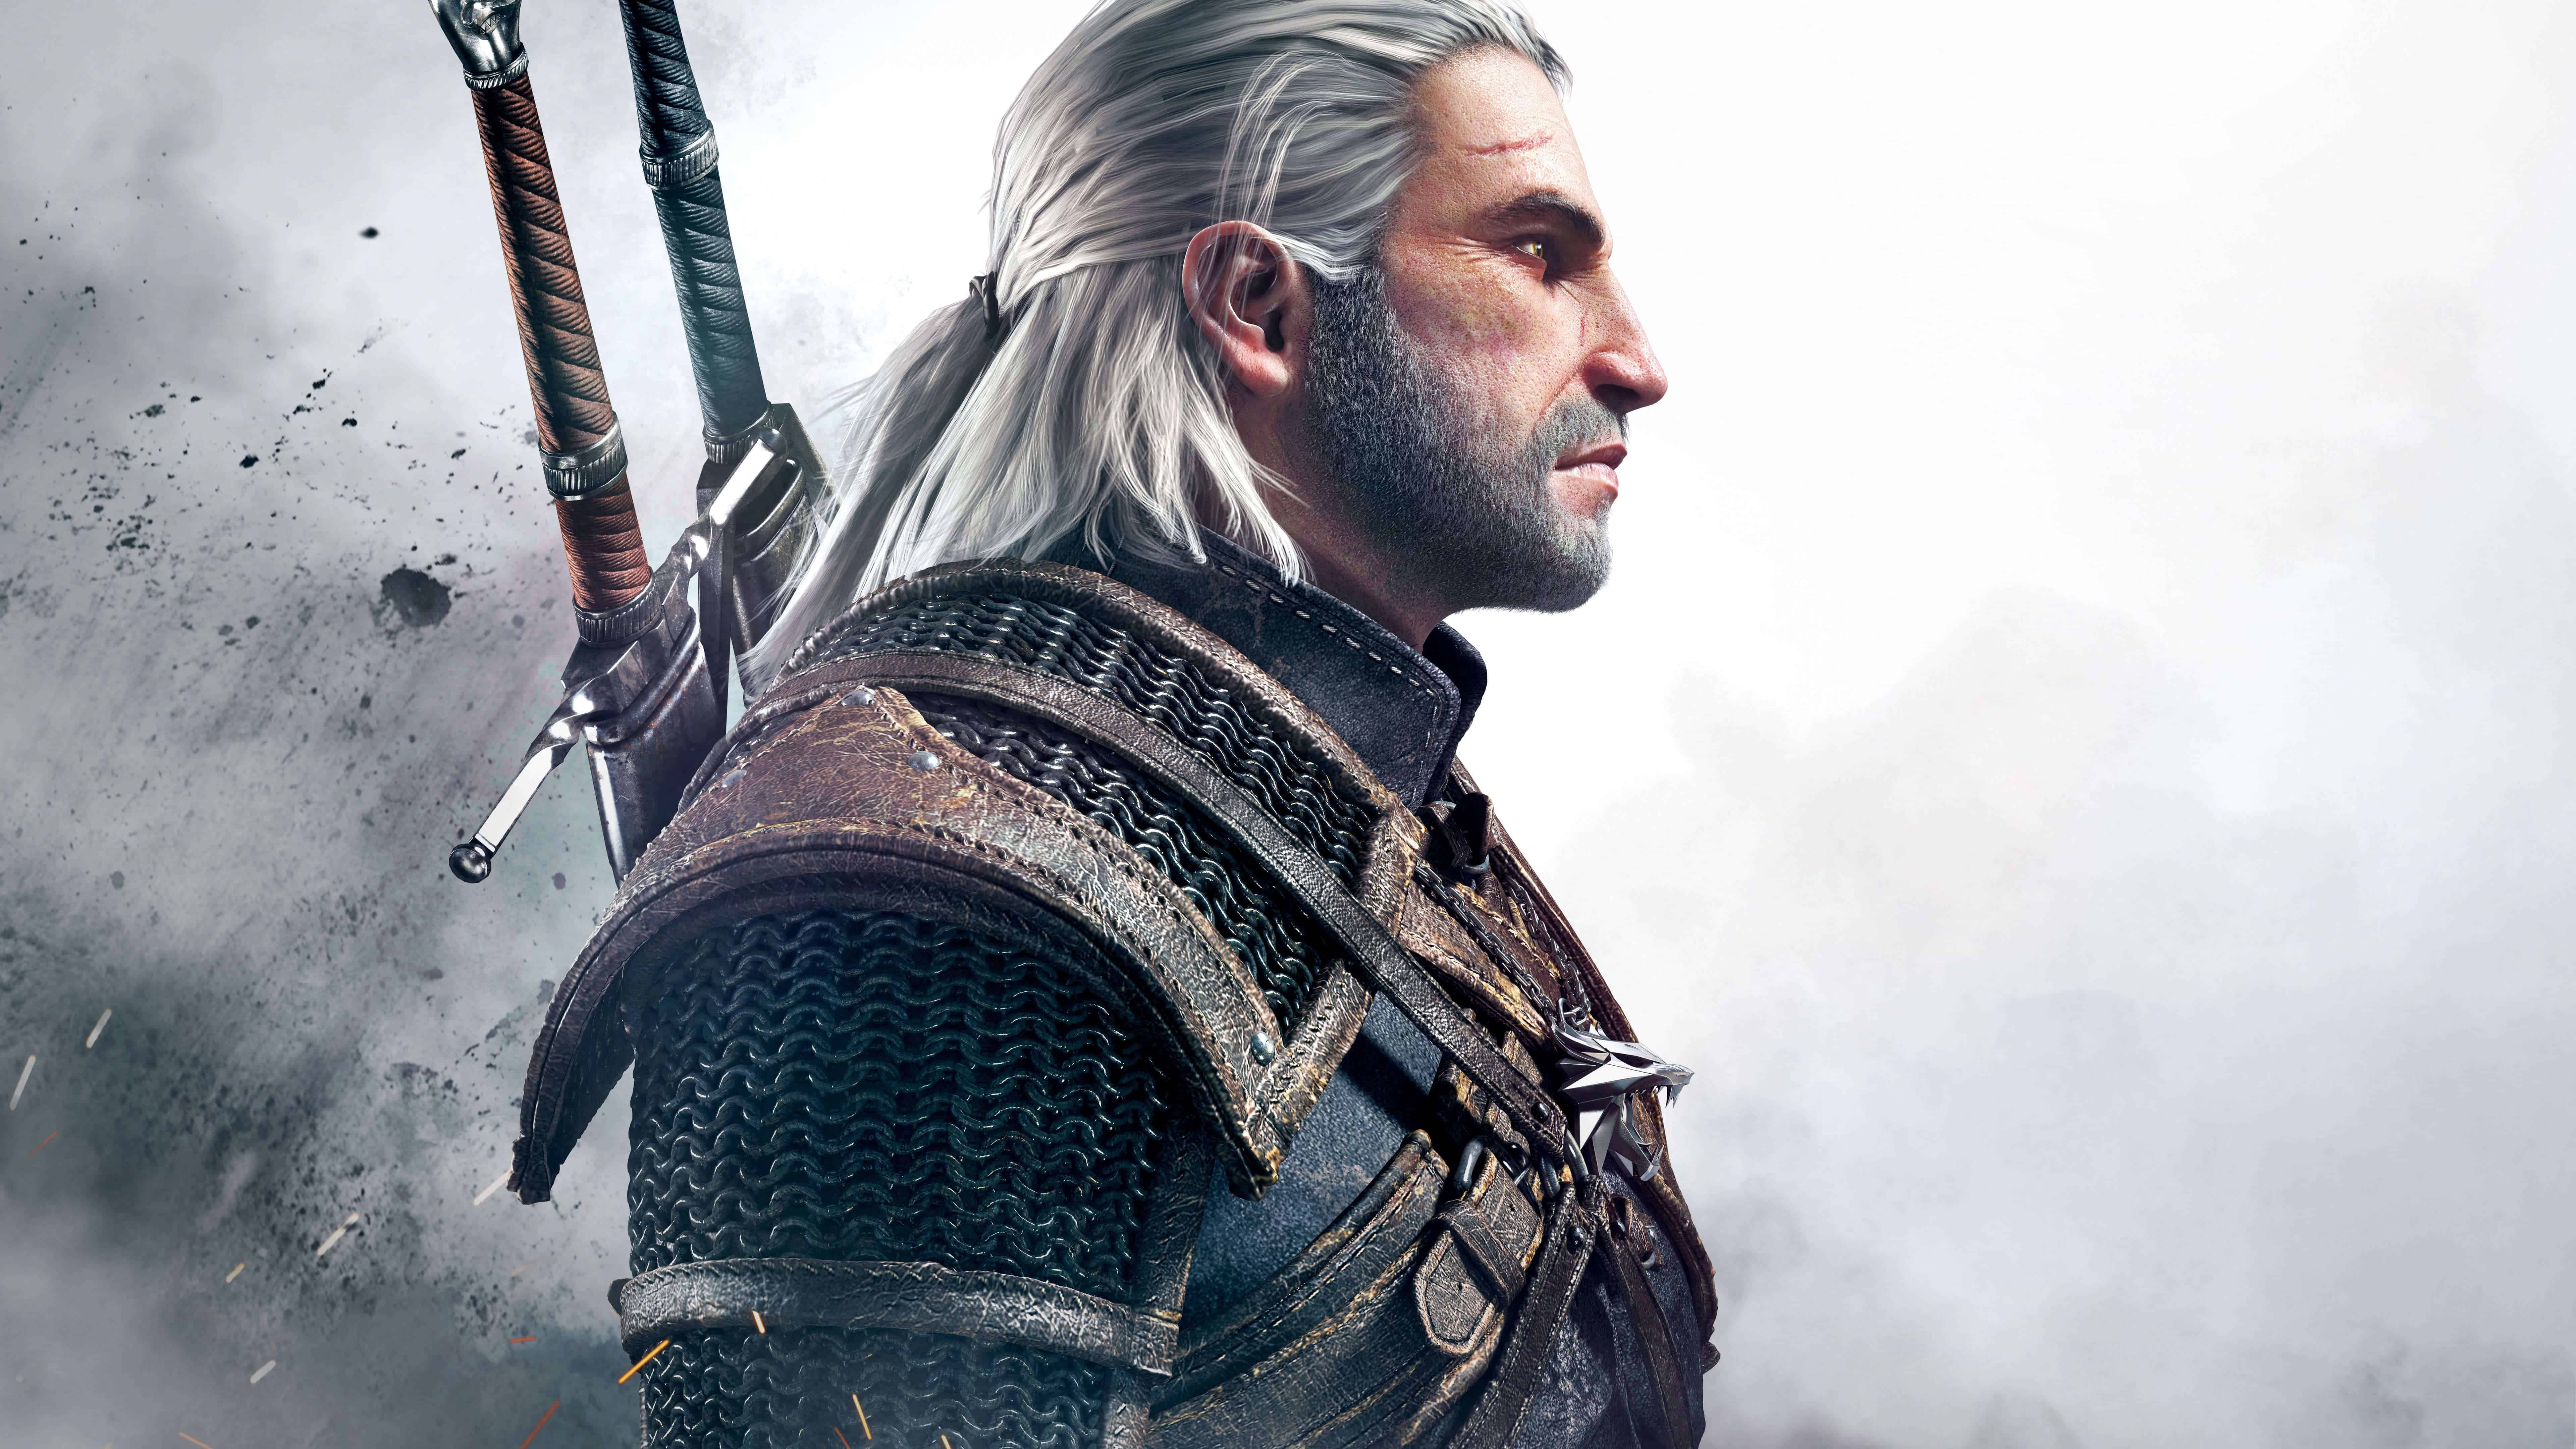 Download Cars Wallpapers For Mobile Witcher 3 Geralt Of Rivia Uhd 8k Wallpaper Pixelz